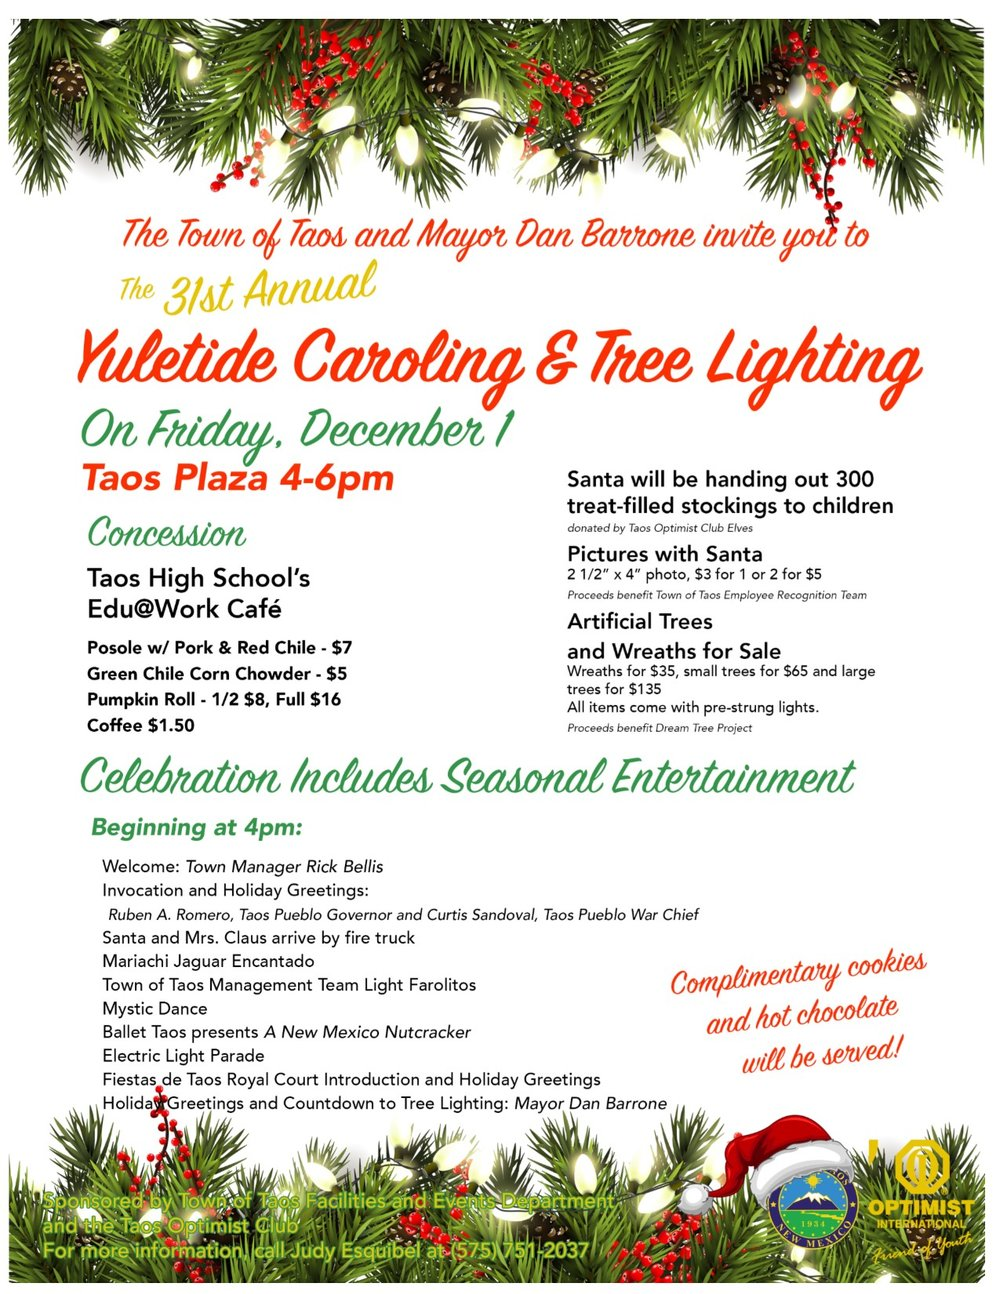 31st Annual Yuletide Caroling & Tree Lighting flyer.jpg